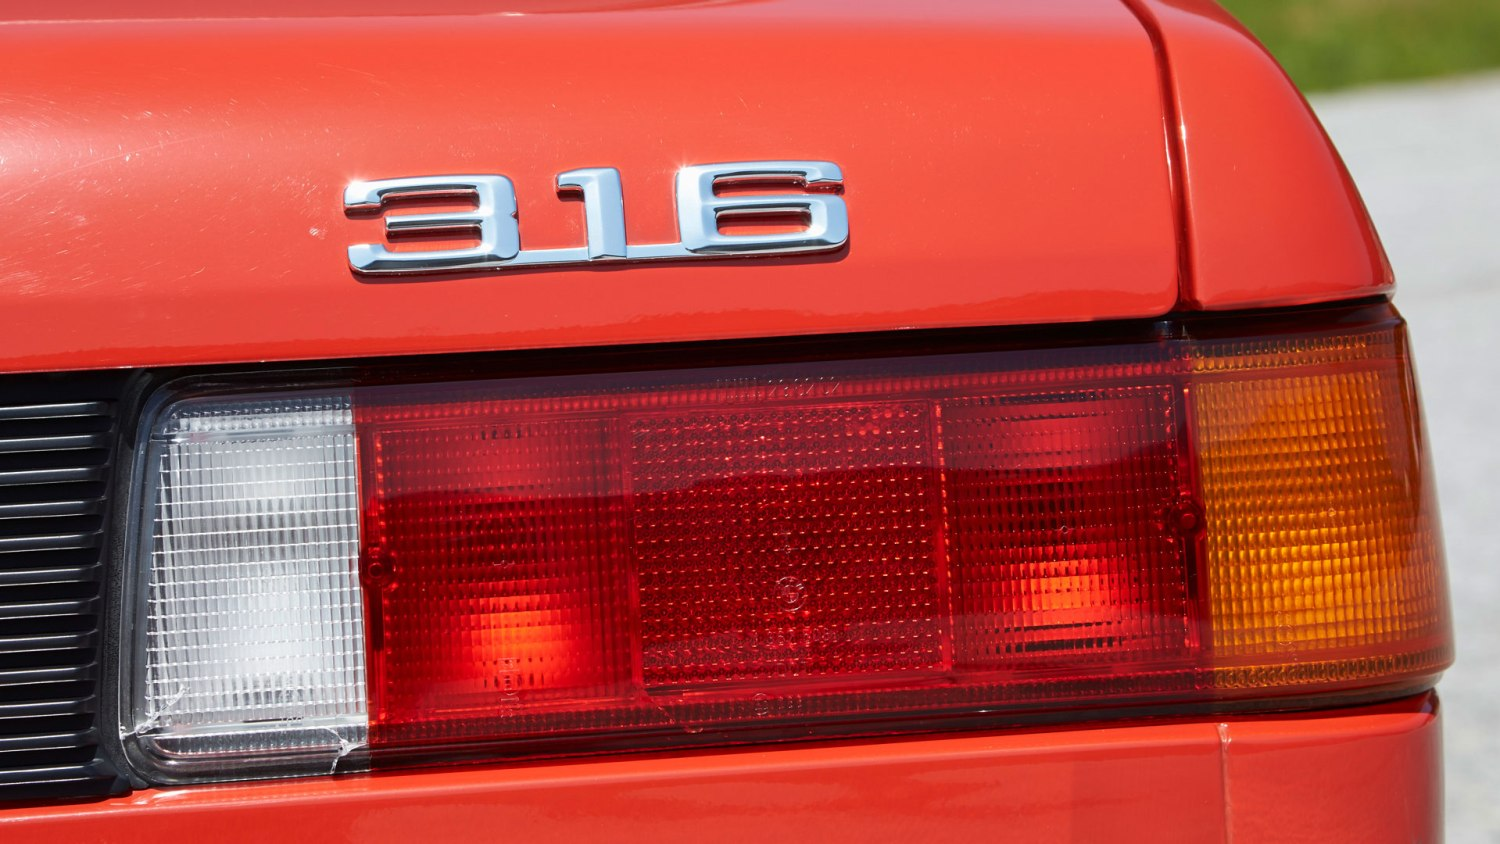 Cars that share the same rear lights